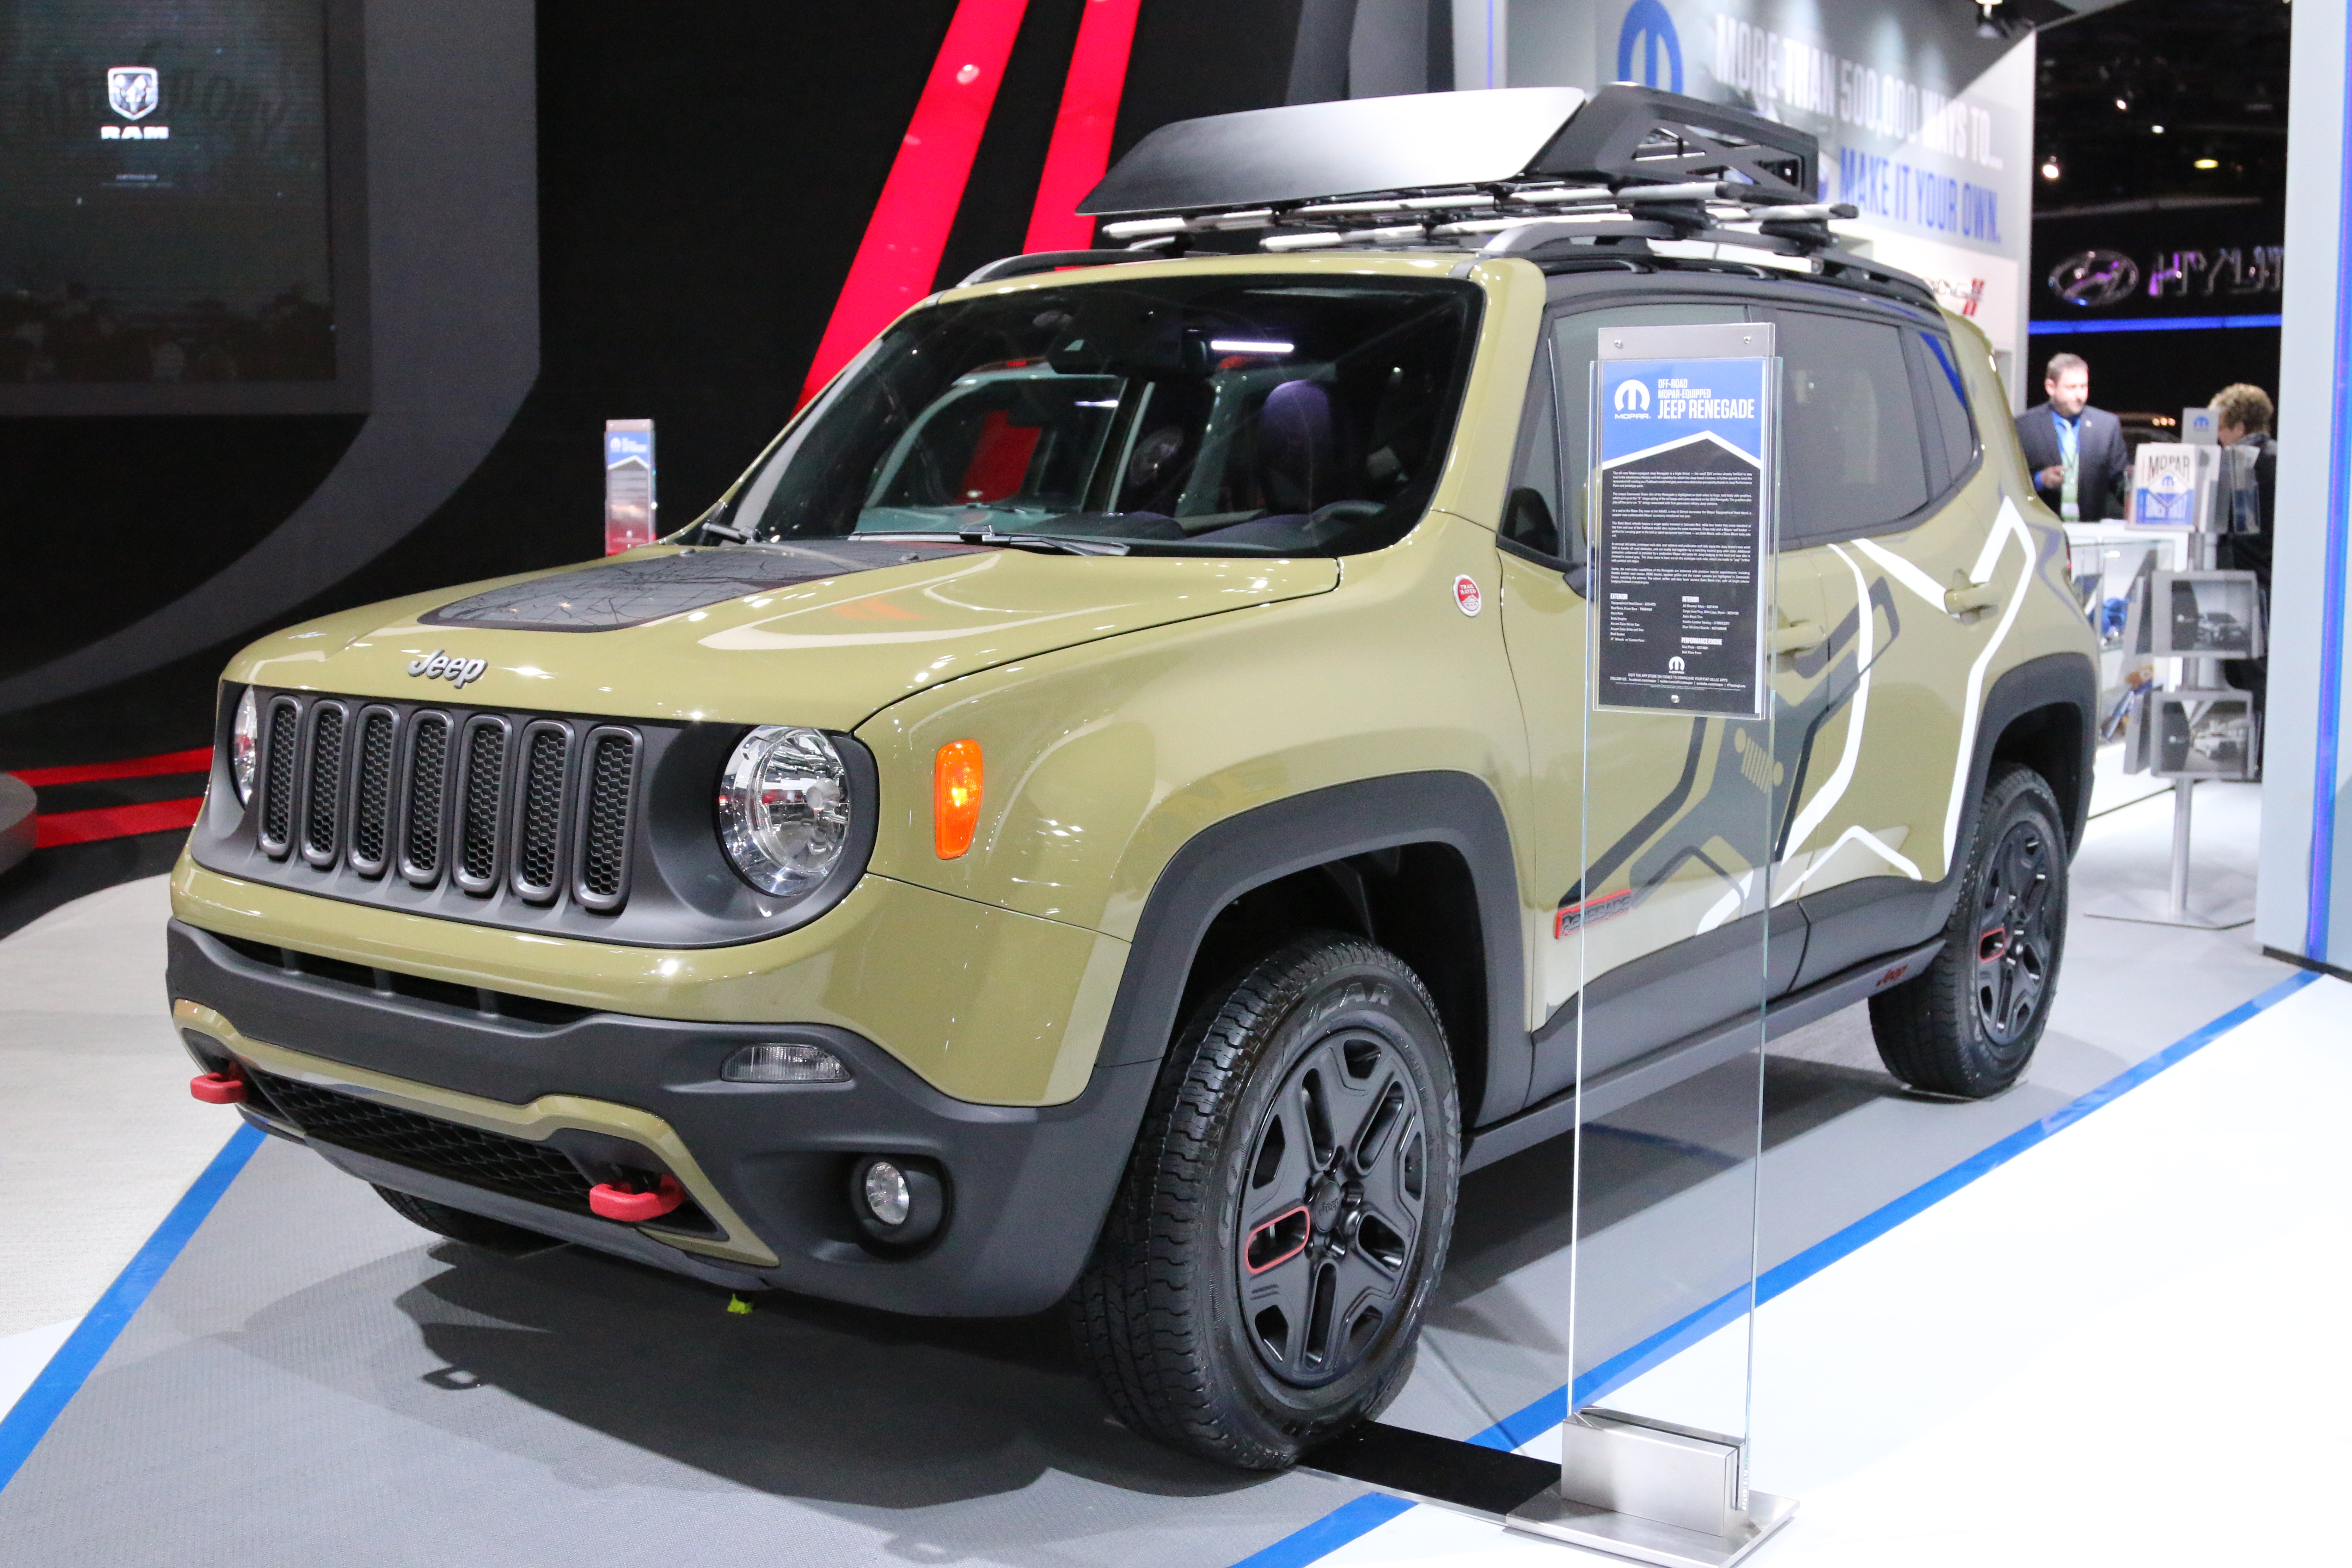 2015 Jeep Renegade Pricing and Availability